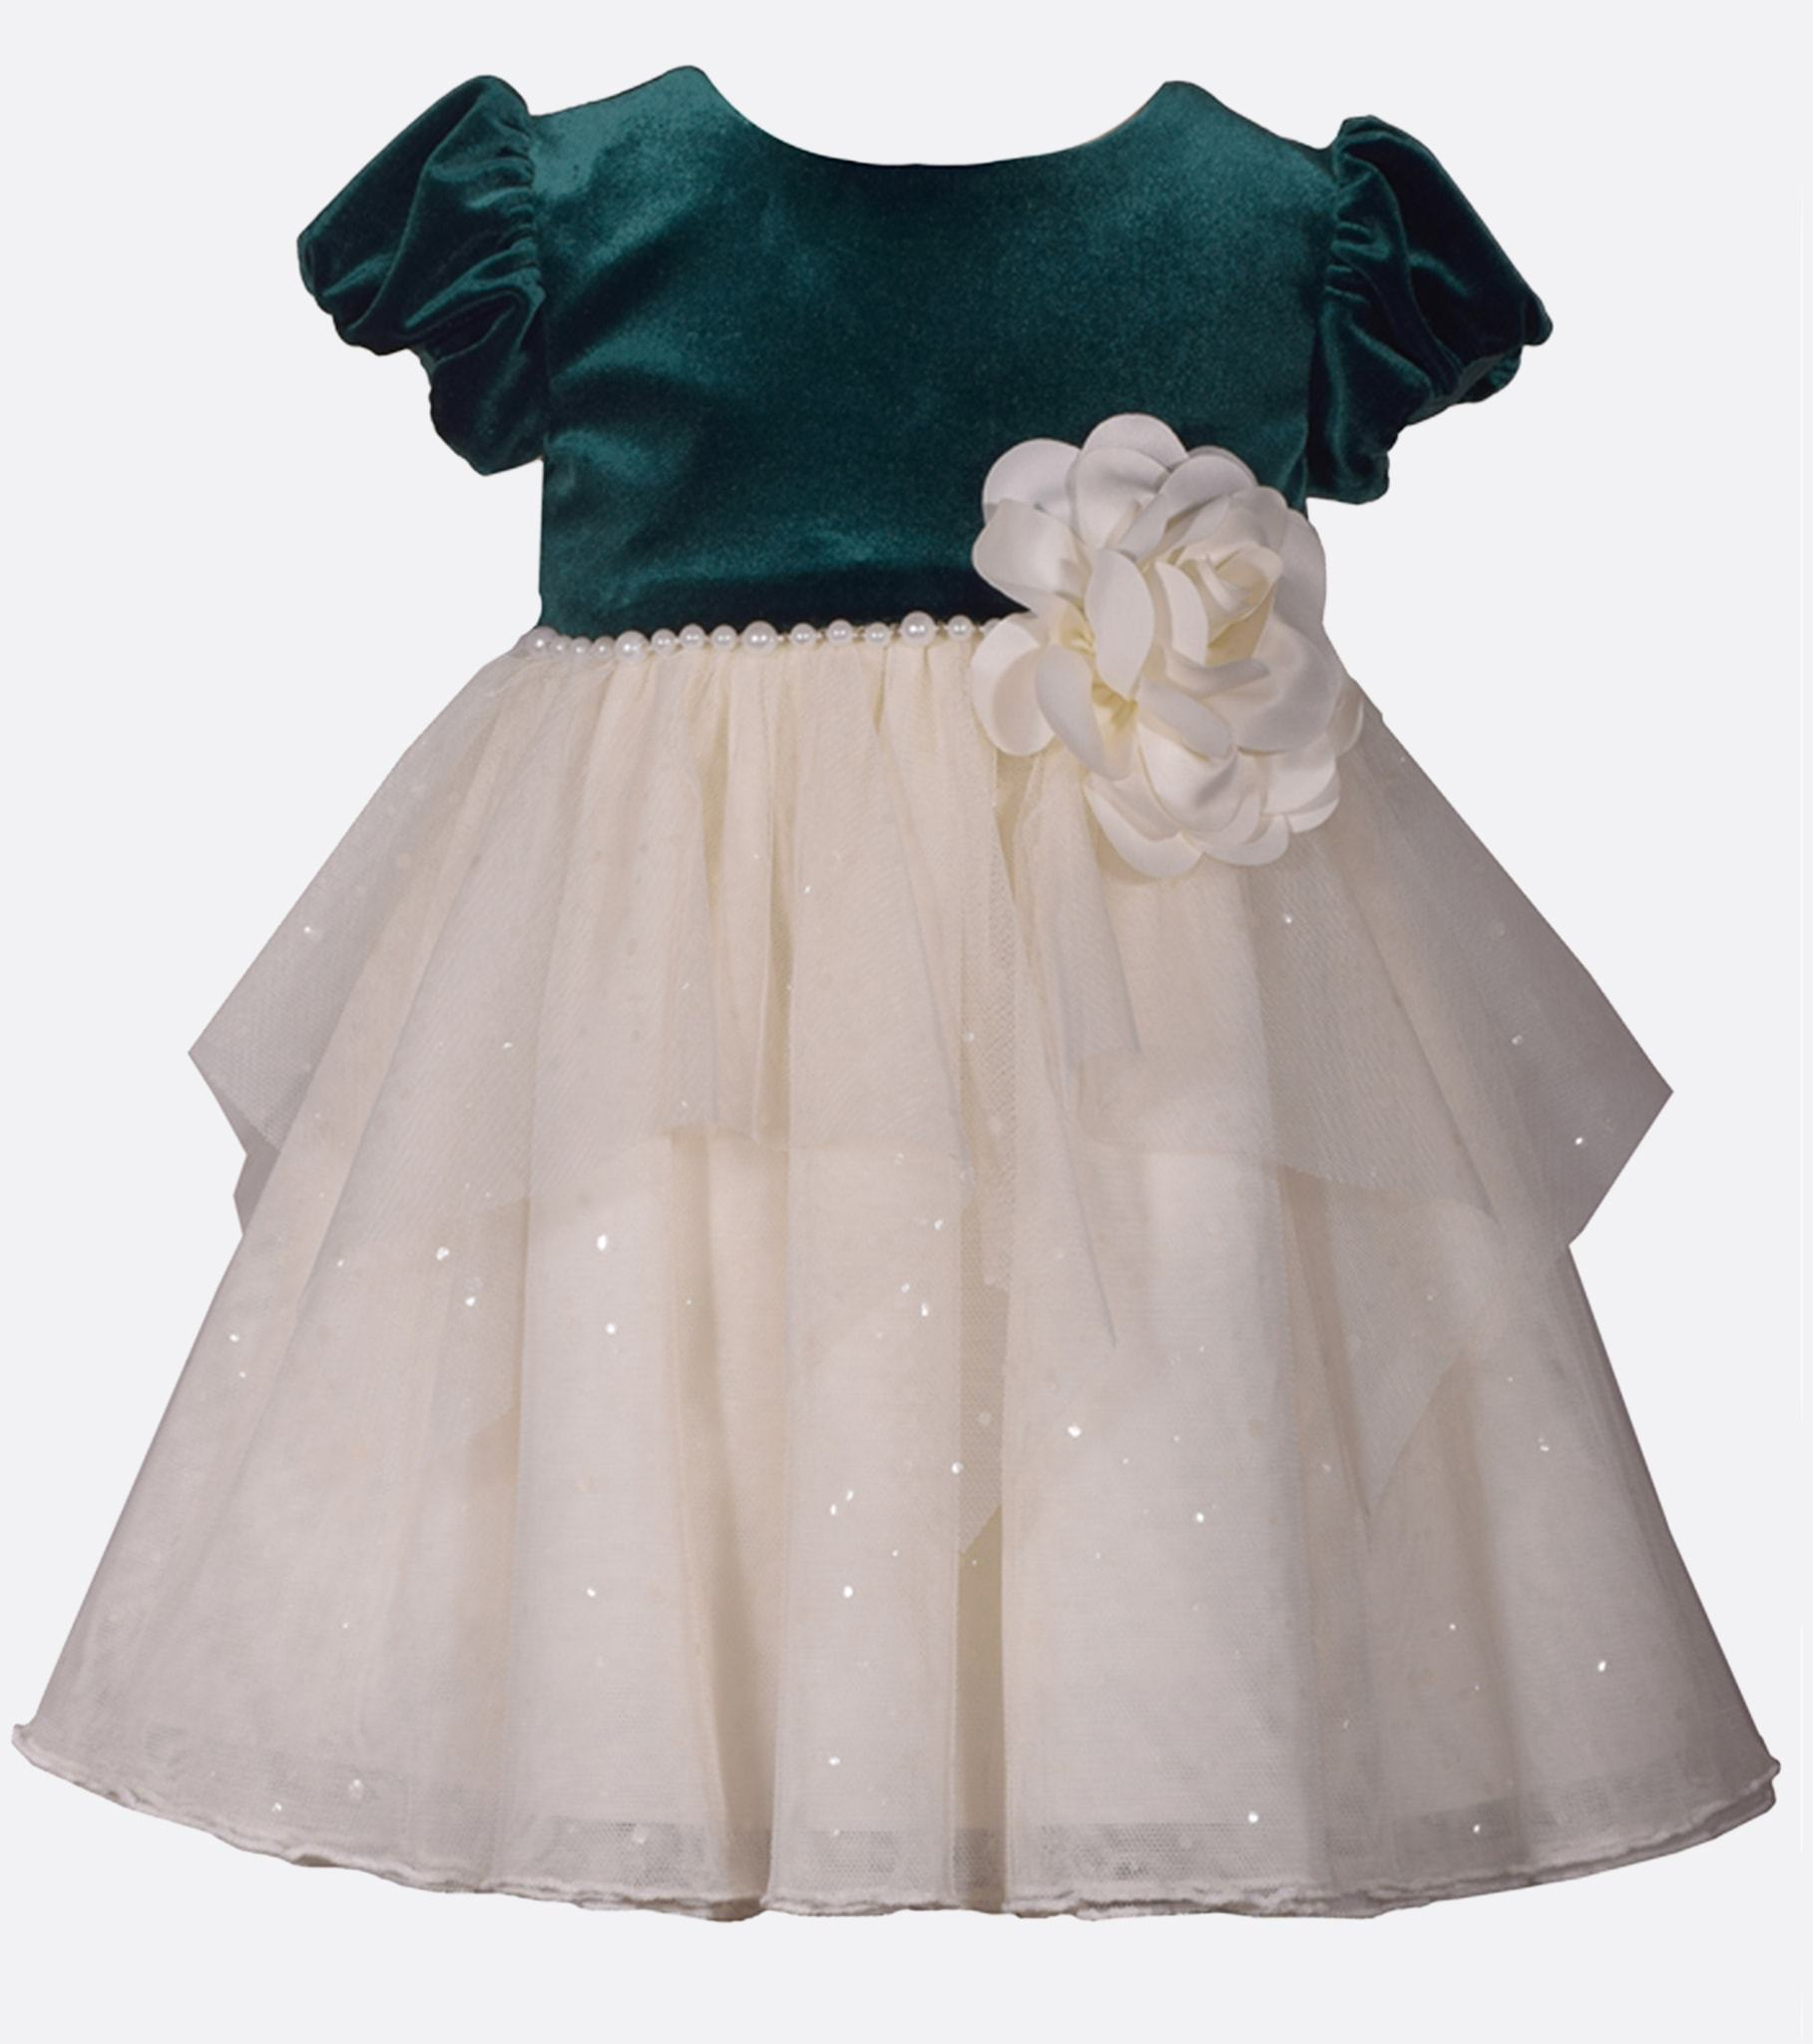 d4000780202 christmas dress, party dresses, girls party dresses, holiday dress